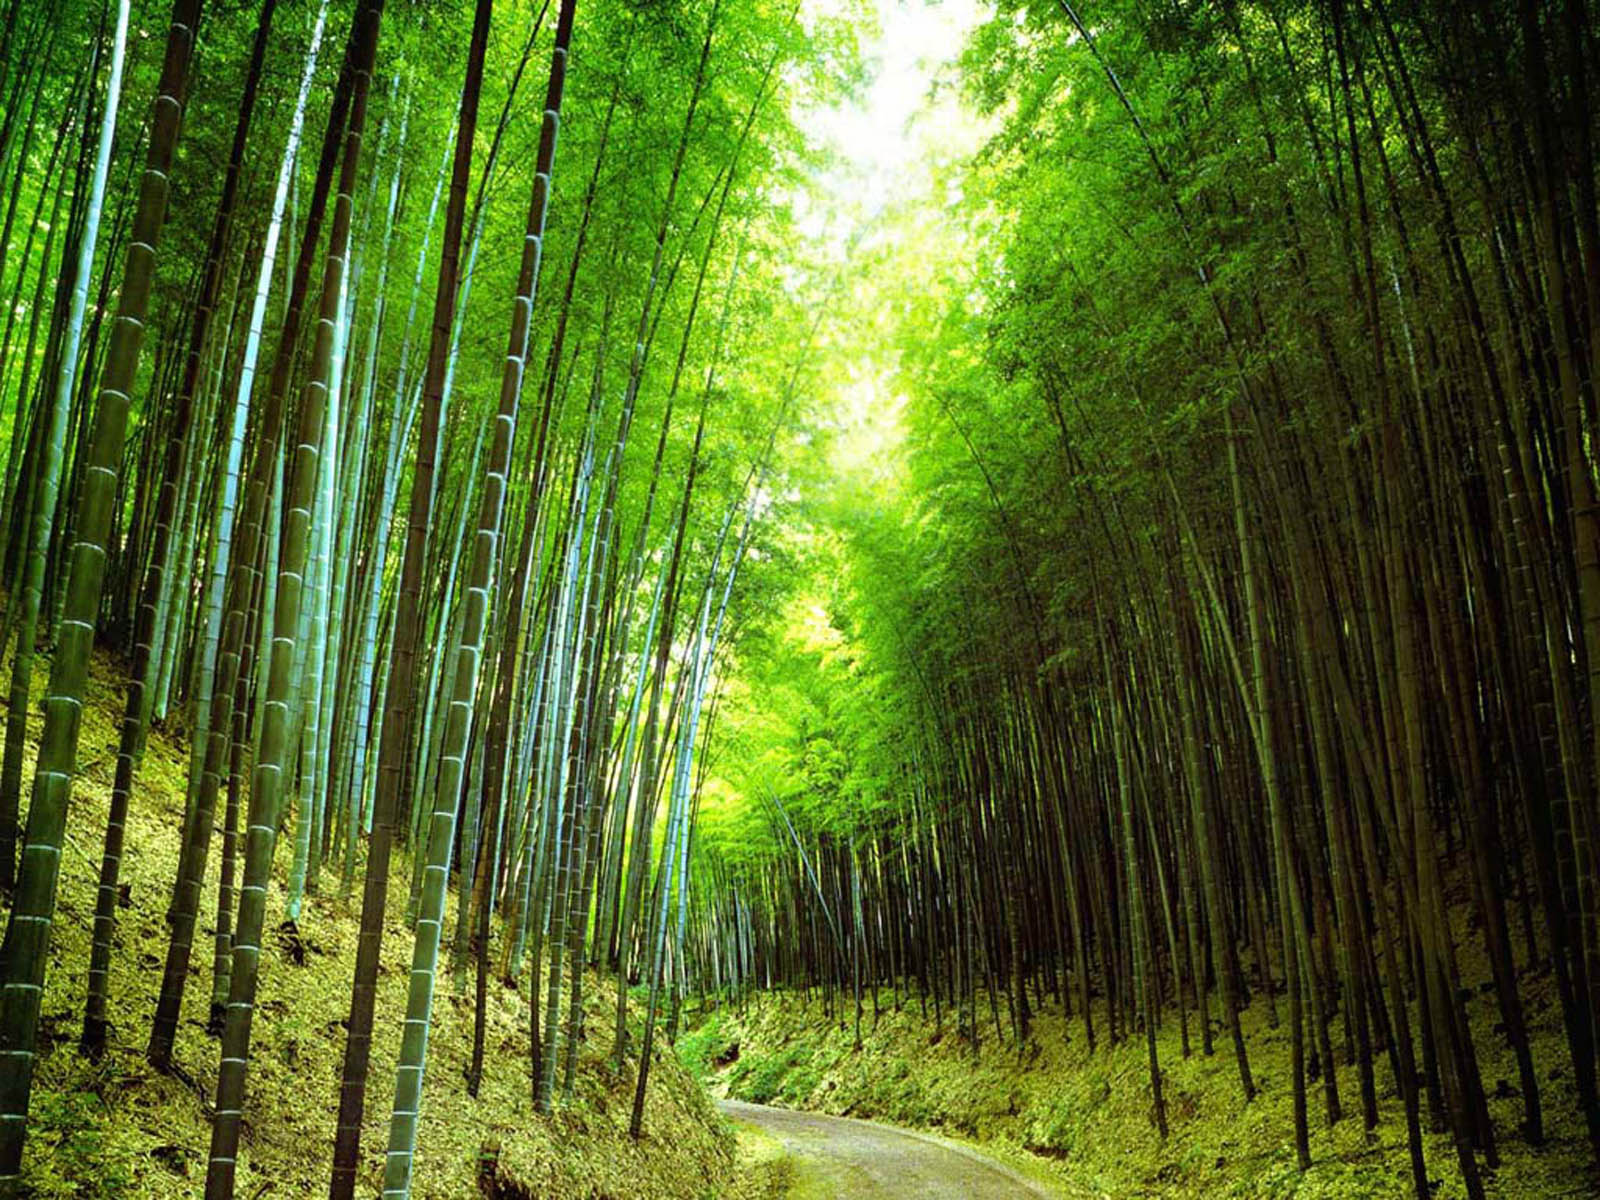 Background Bamboo Forest 3d - HD Wallpaper